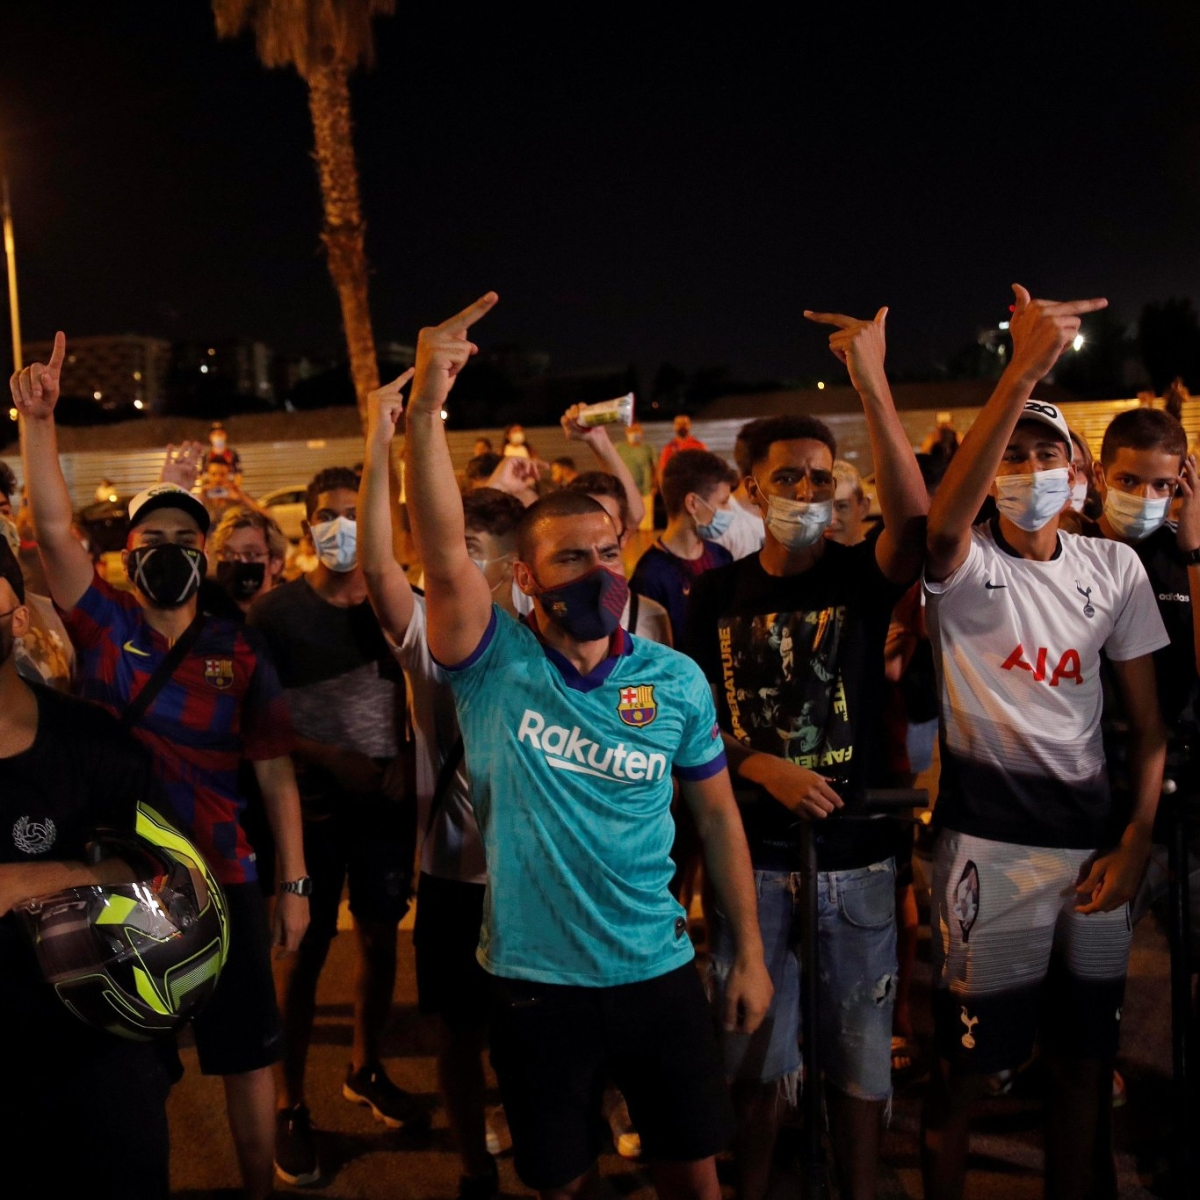 Fans gather at Camp Nou, chant 'Messi stay' as Argentine expresses desire to leave Barcelona